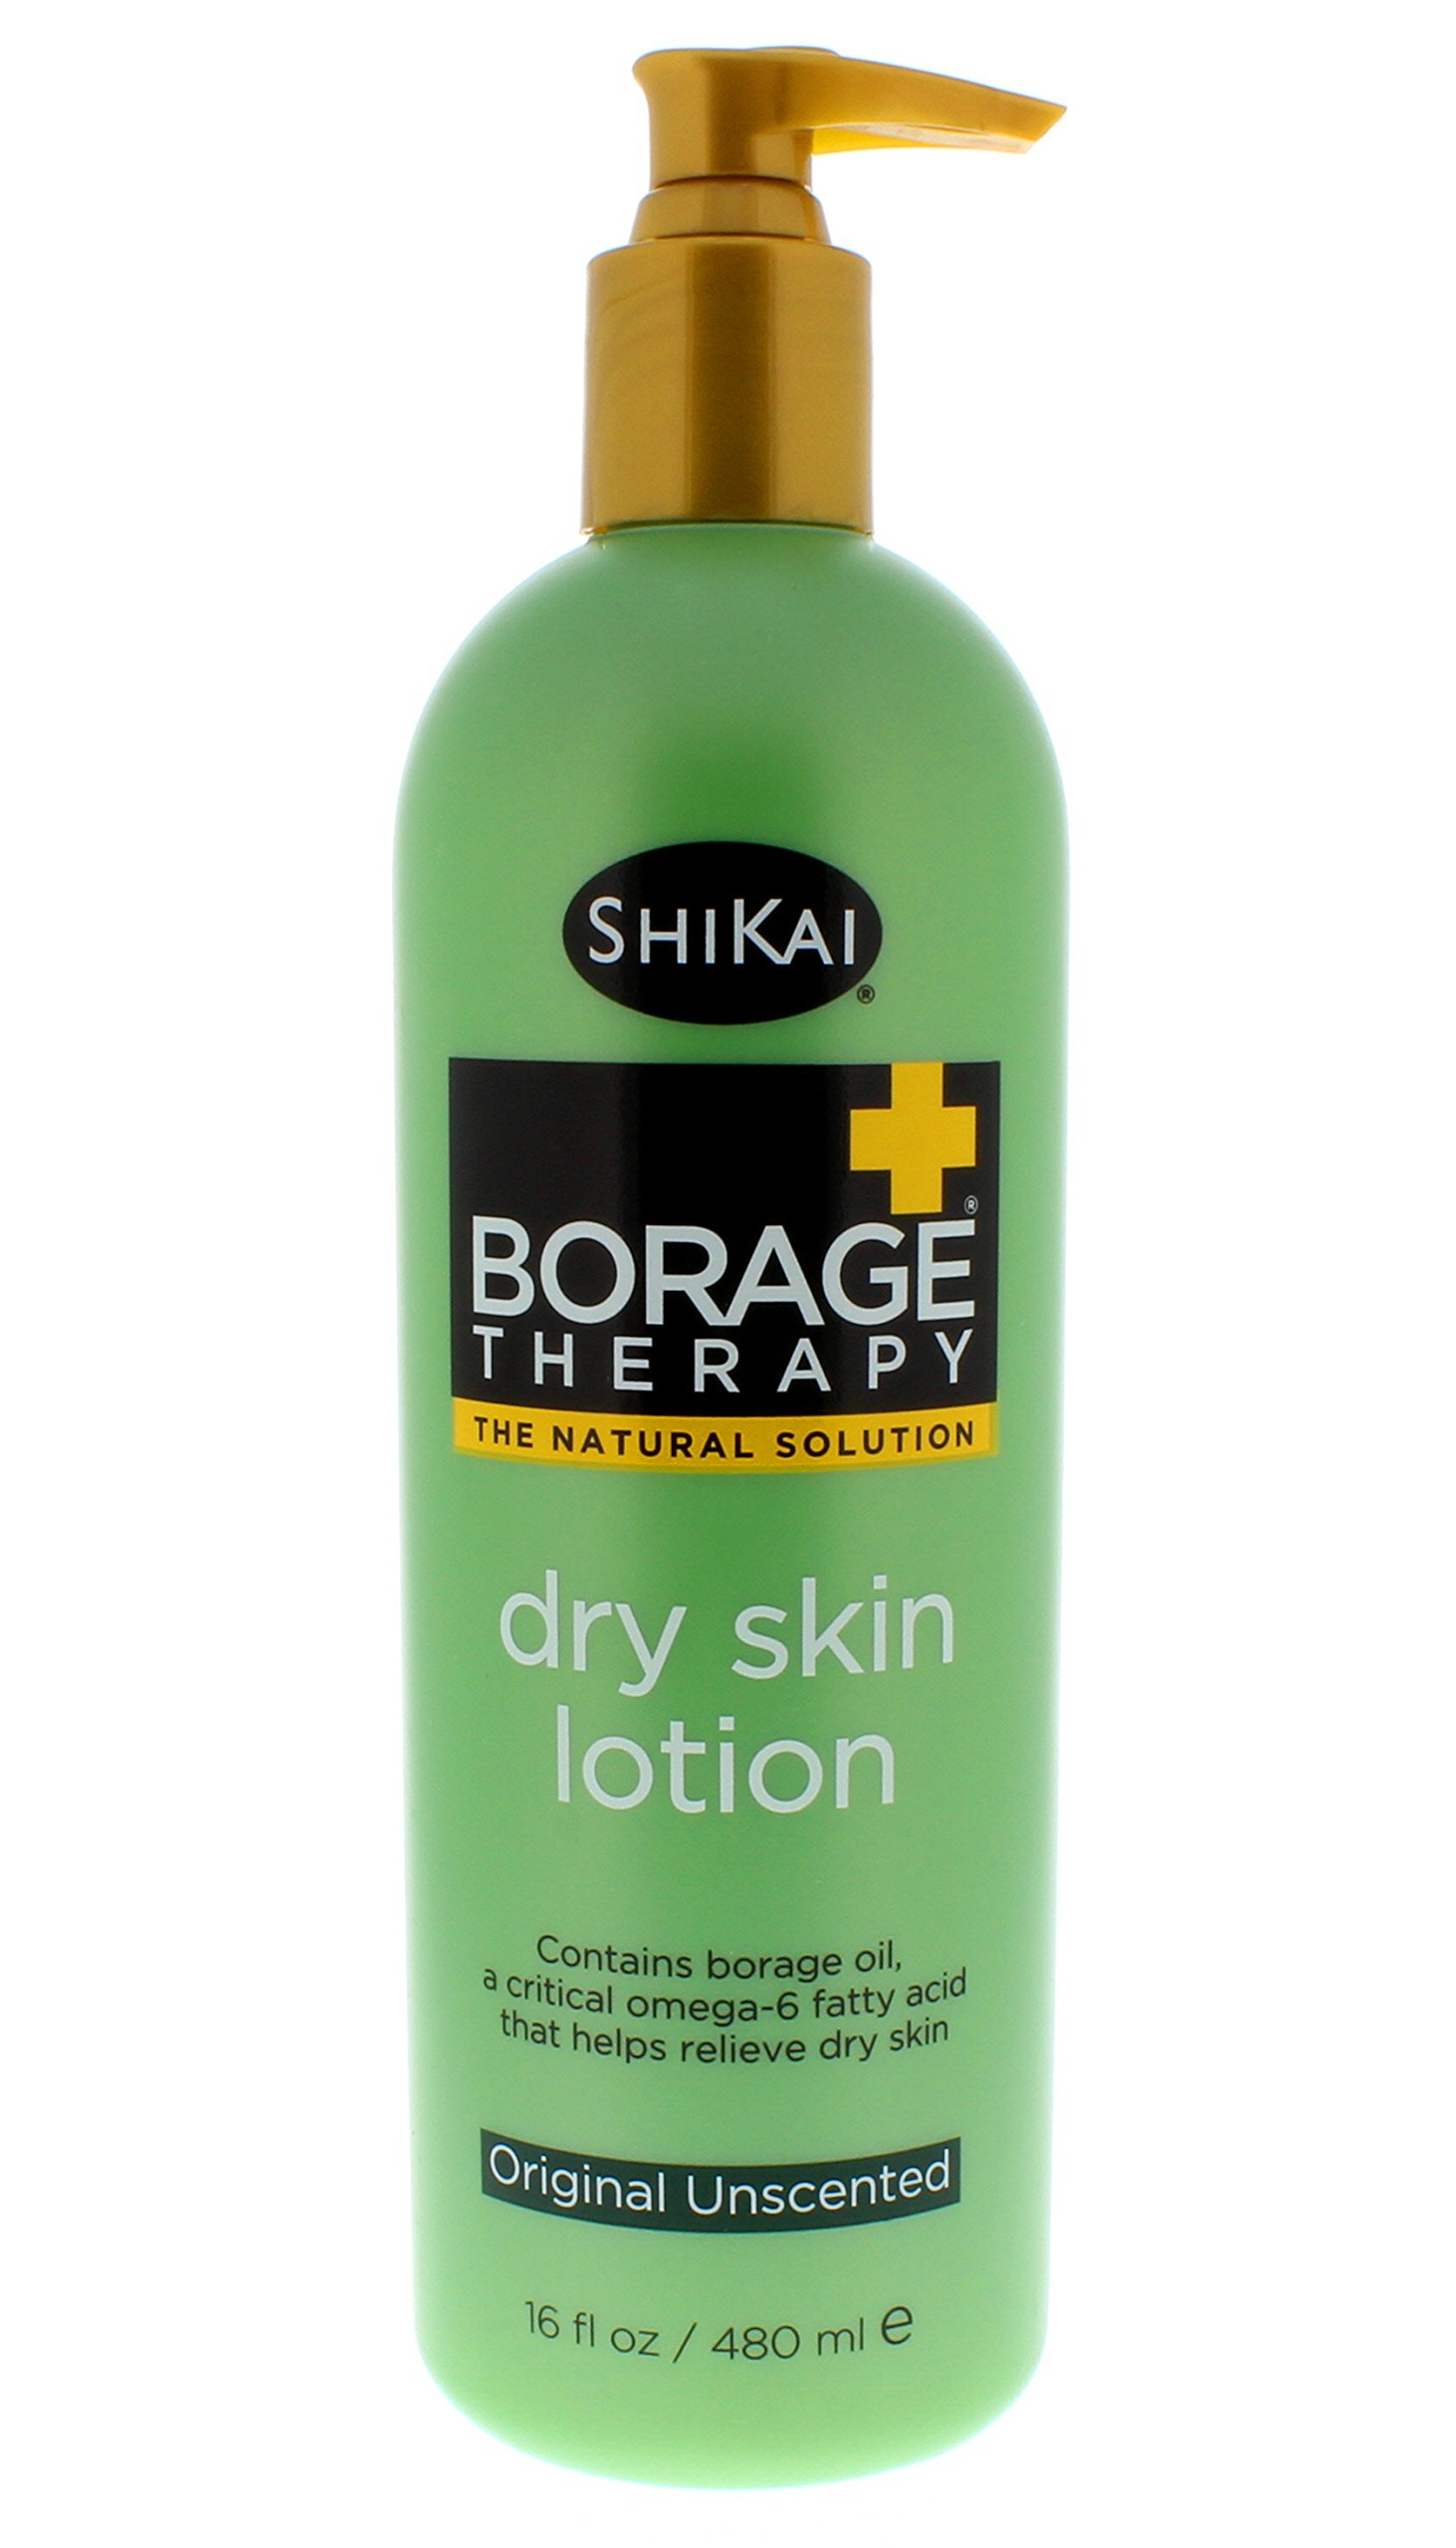 ShiKai - Borage Therapy Dry Skin Lotion, Plant-Based Soothing & Moisturizing Relief For Dry, Irritated & Itchy Skin, Non-Greasy, Sensitive Skin Friendly (Original Unscented, 16 Ounces)